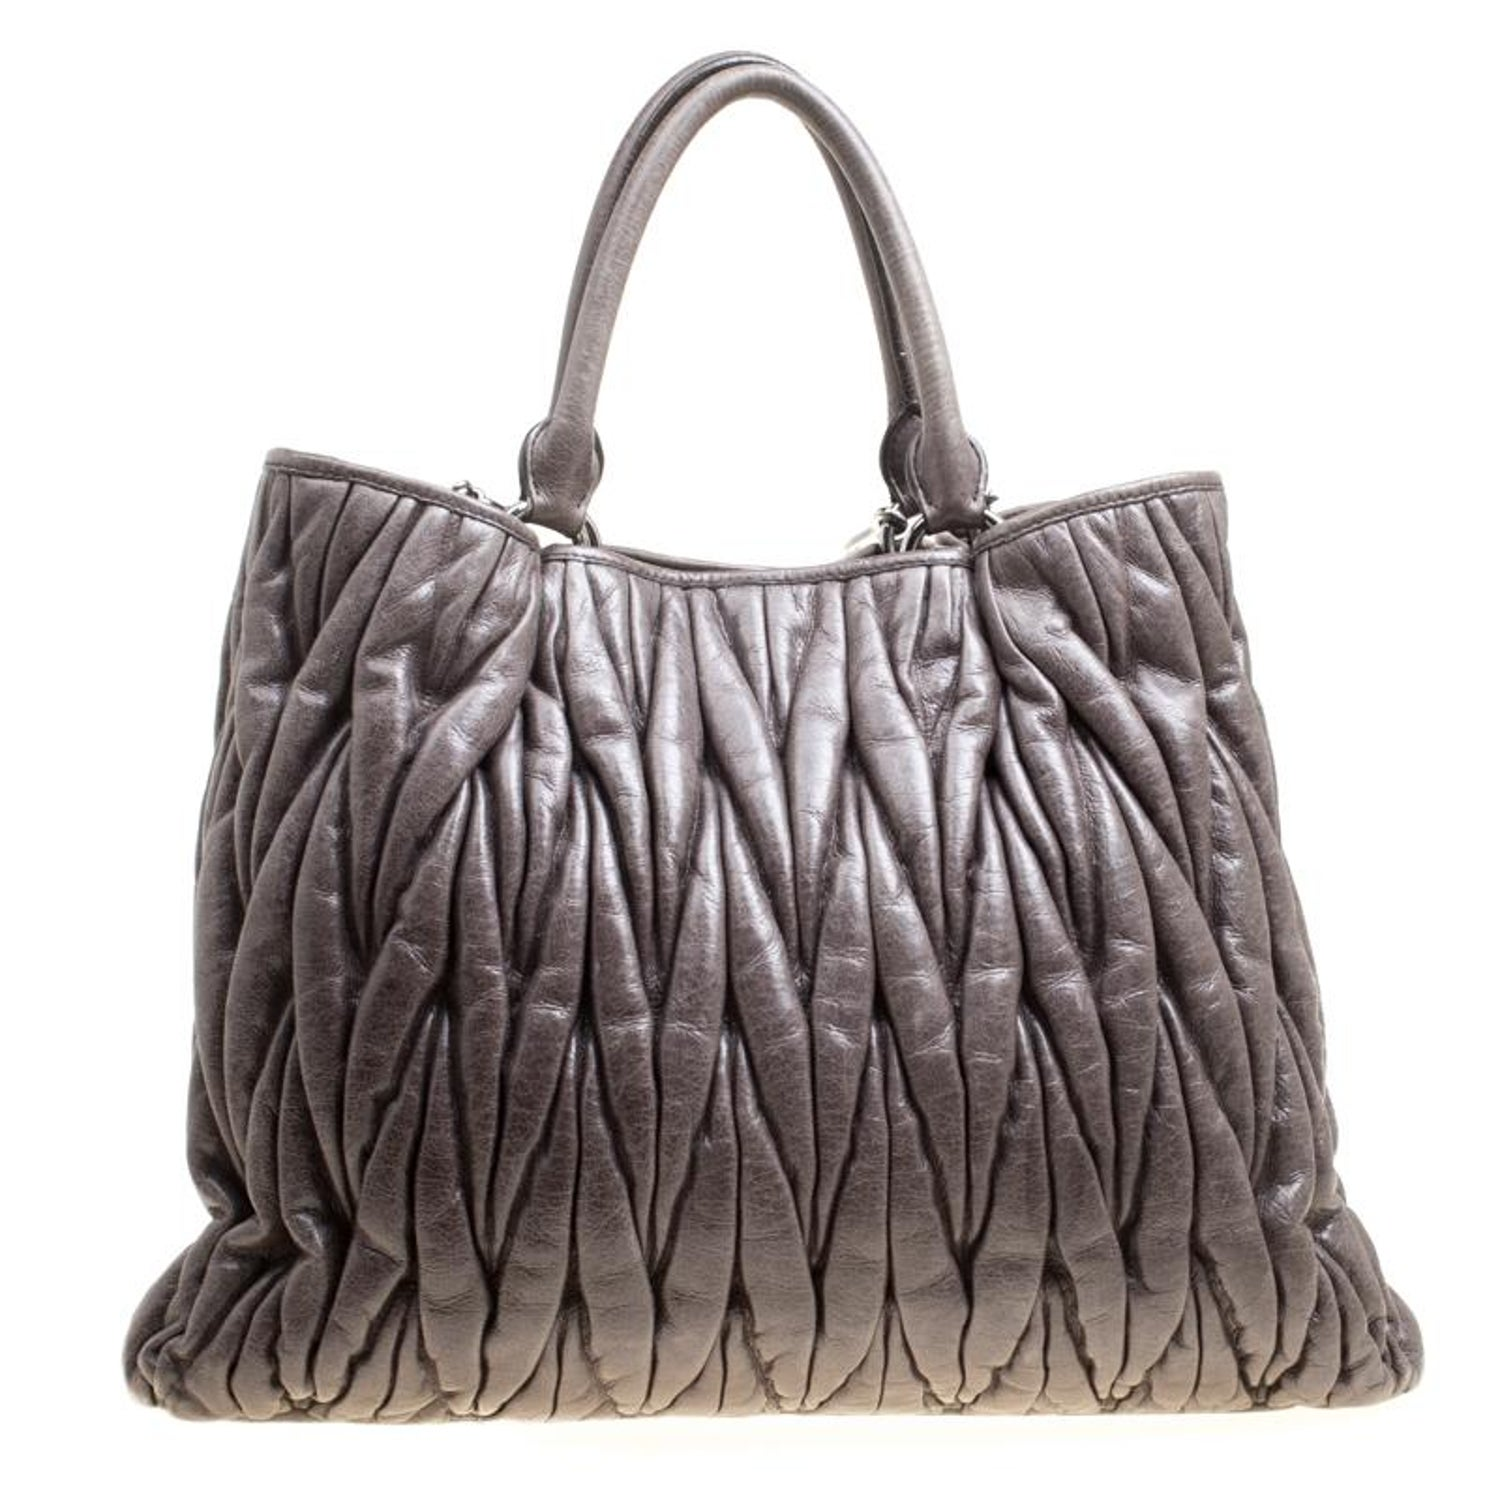 e2343d4eae86 Miu Miu Dark Grey Glazed Matelasse Leather Tote For Sale at 1stdibs